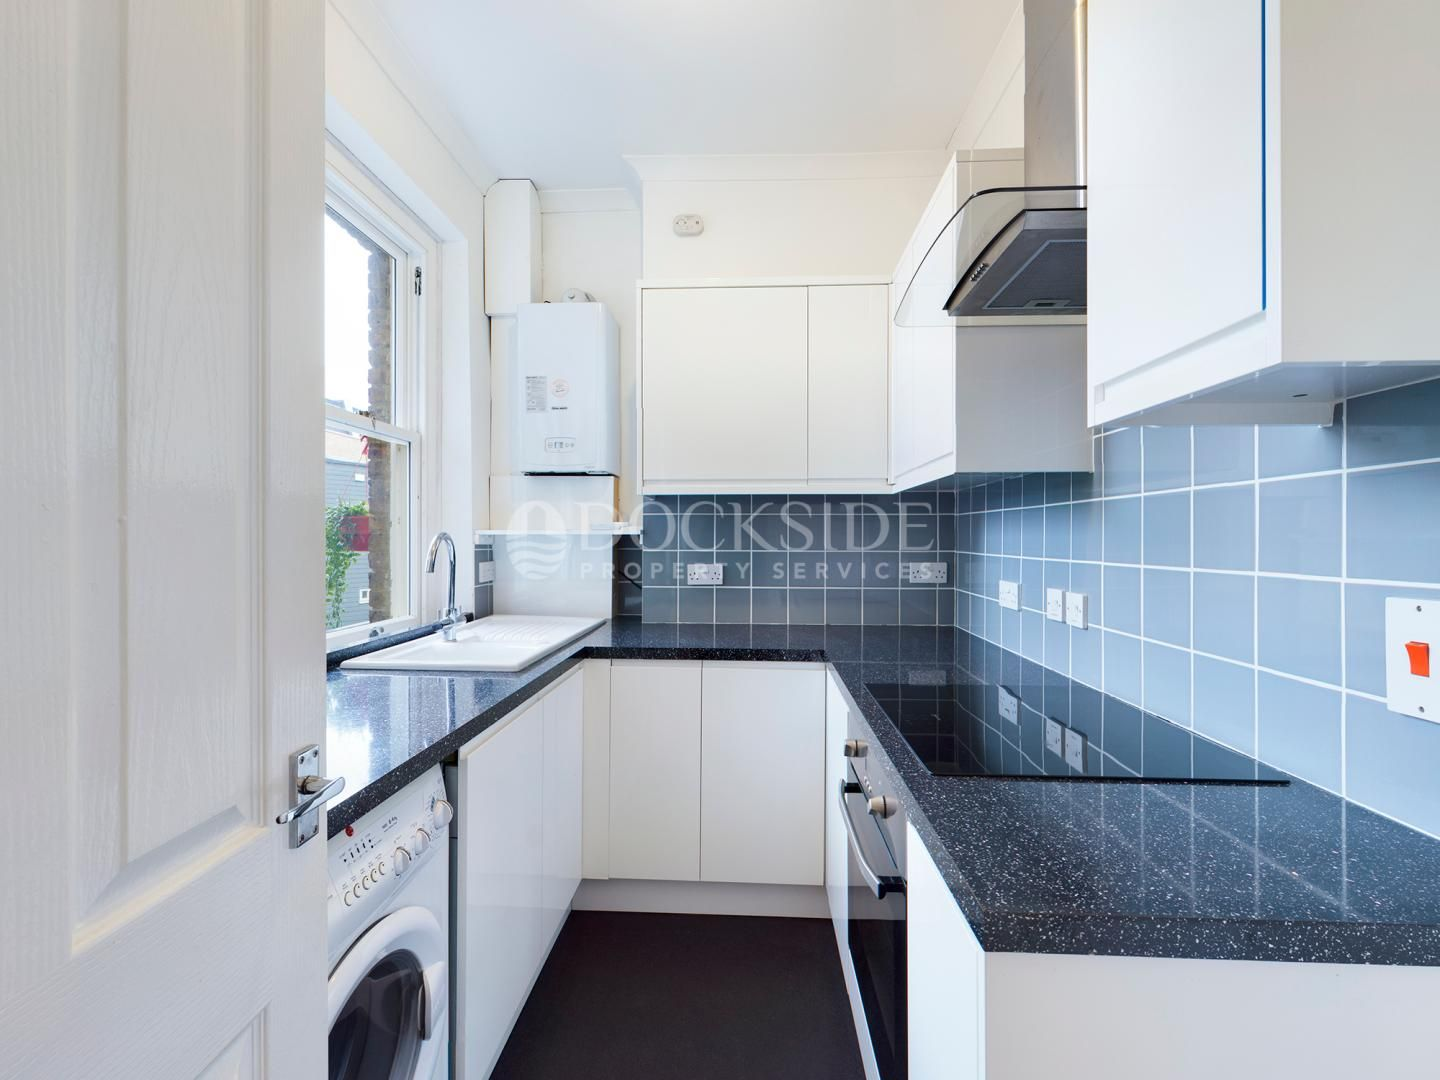 2 bed house for sale in Victoria Street, ME1